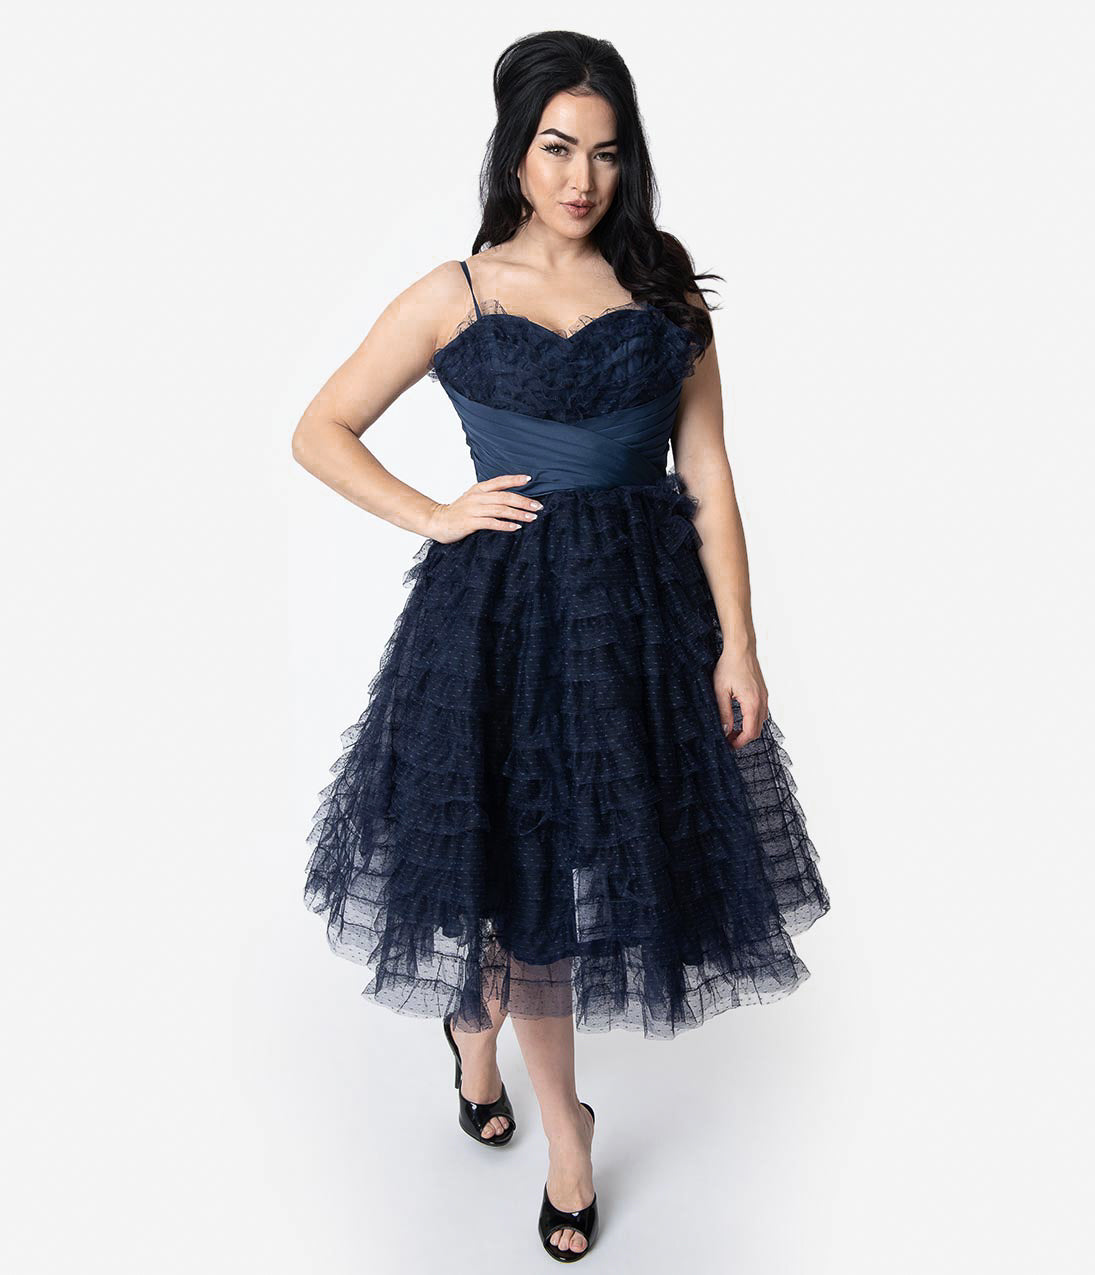 Vintage 50s Dresses: Best 1950s Dress Styles Unique Vintage 1950S Navy Ruffled Tulle Sweetheart Cupcake Swing Dress $128.00 AT vintagedancer.com